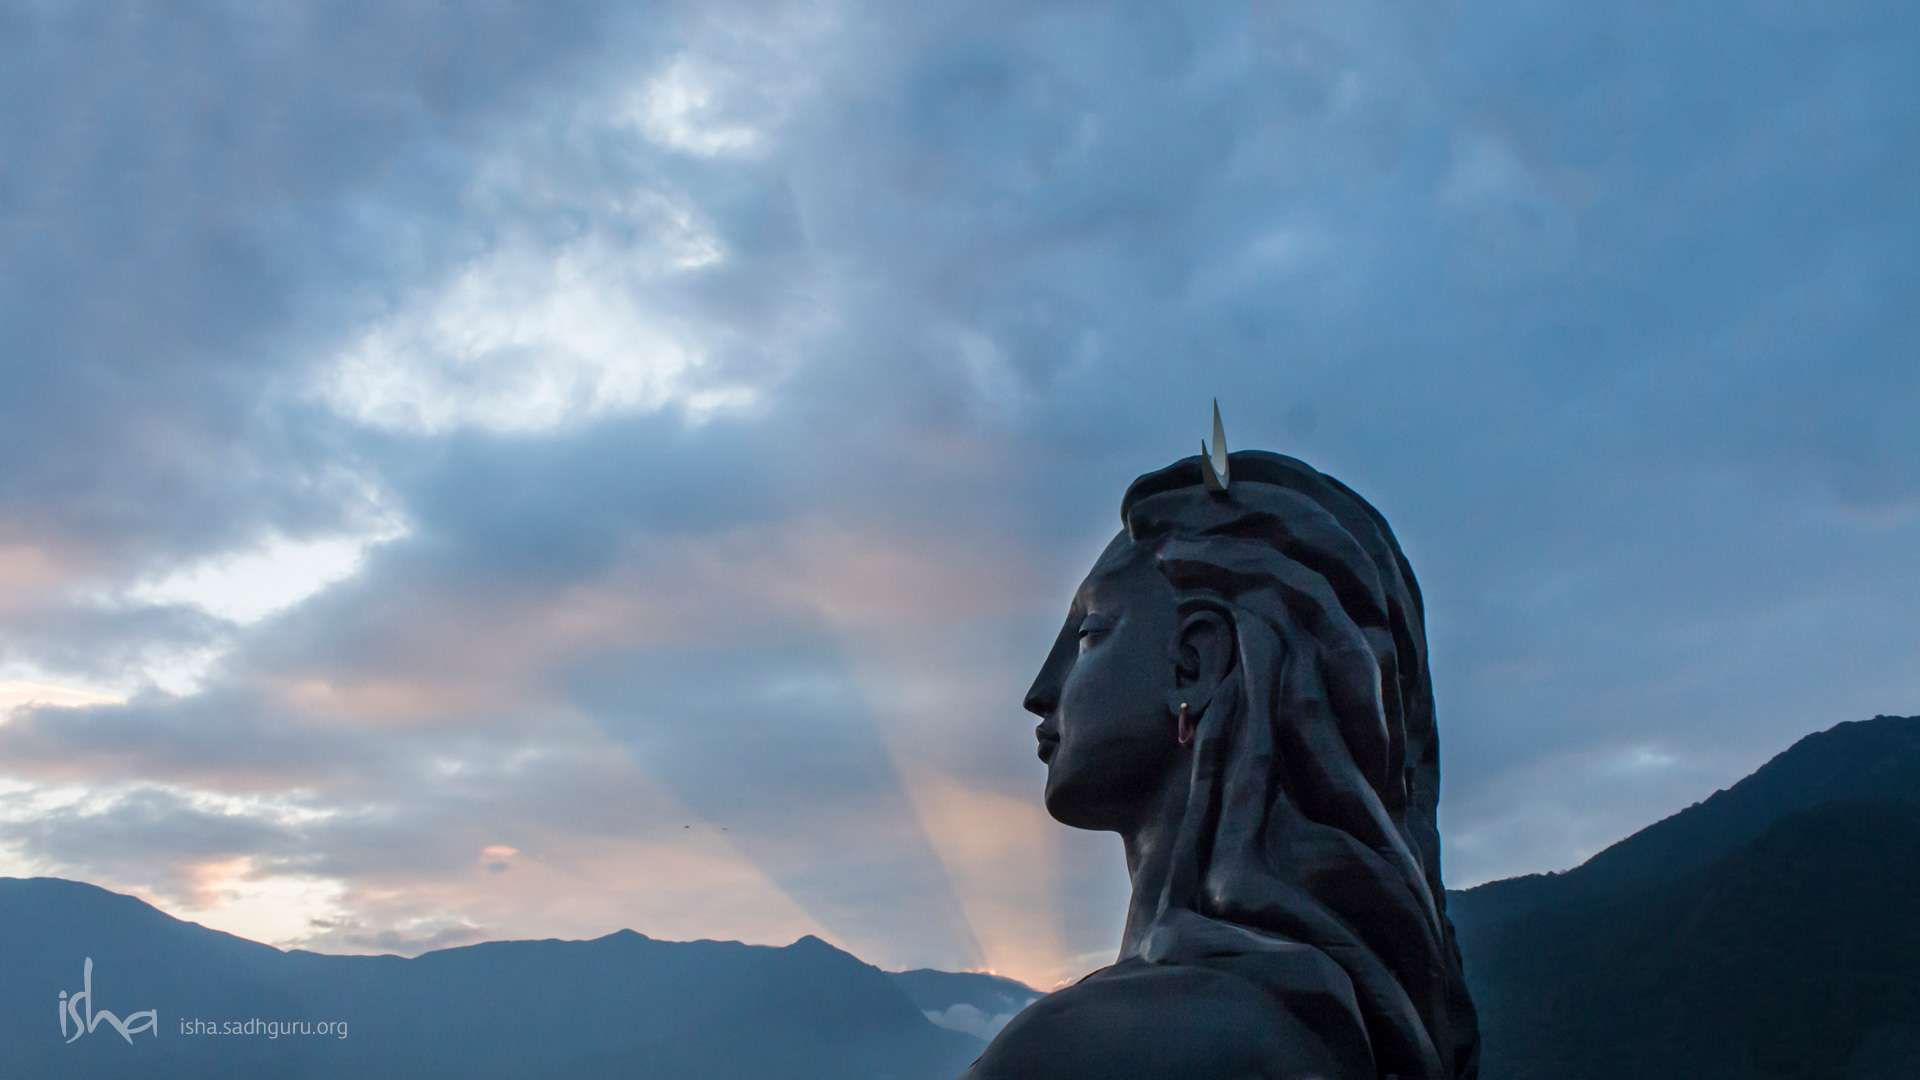 Mahashivratri Images  - The Adiyogi with setting Sun